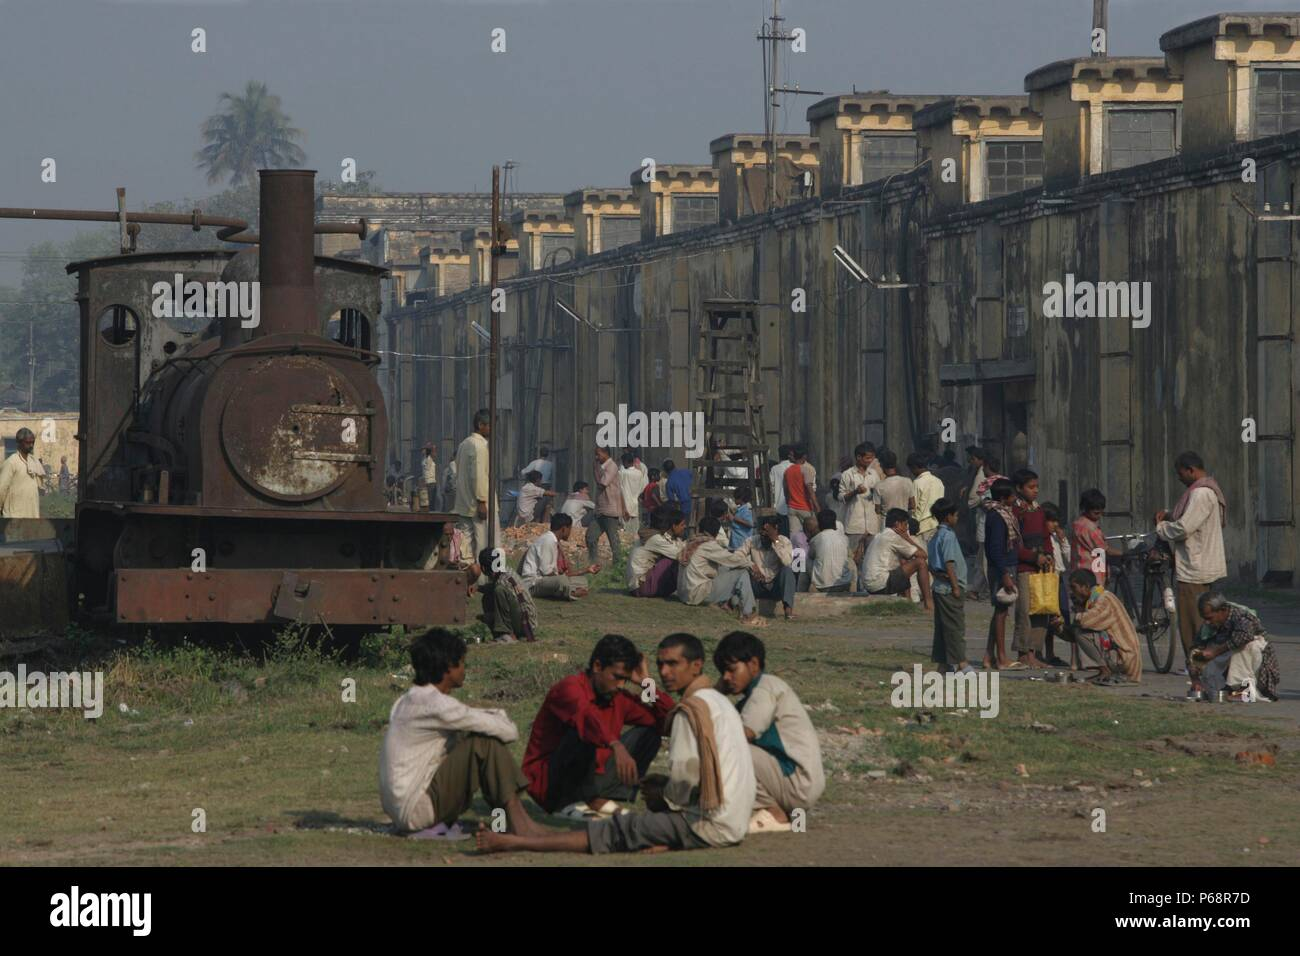 Workers Break ' Rameshwara Jute Mill in Bihar with the company's derelict F class 0-6-0 in the workers yard on Sunday 18th March 2007. - Stock Image